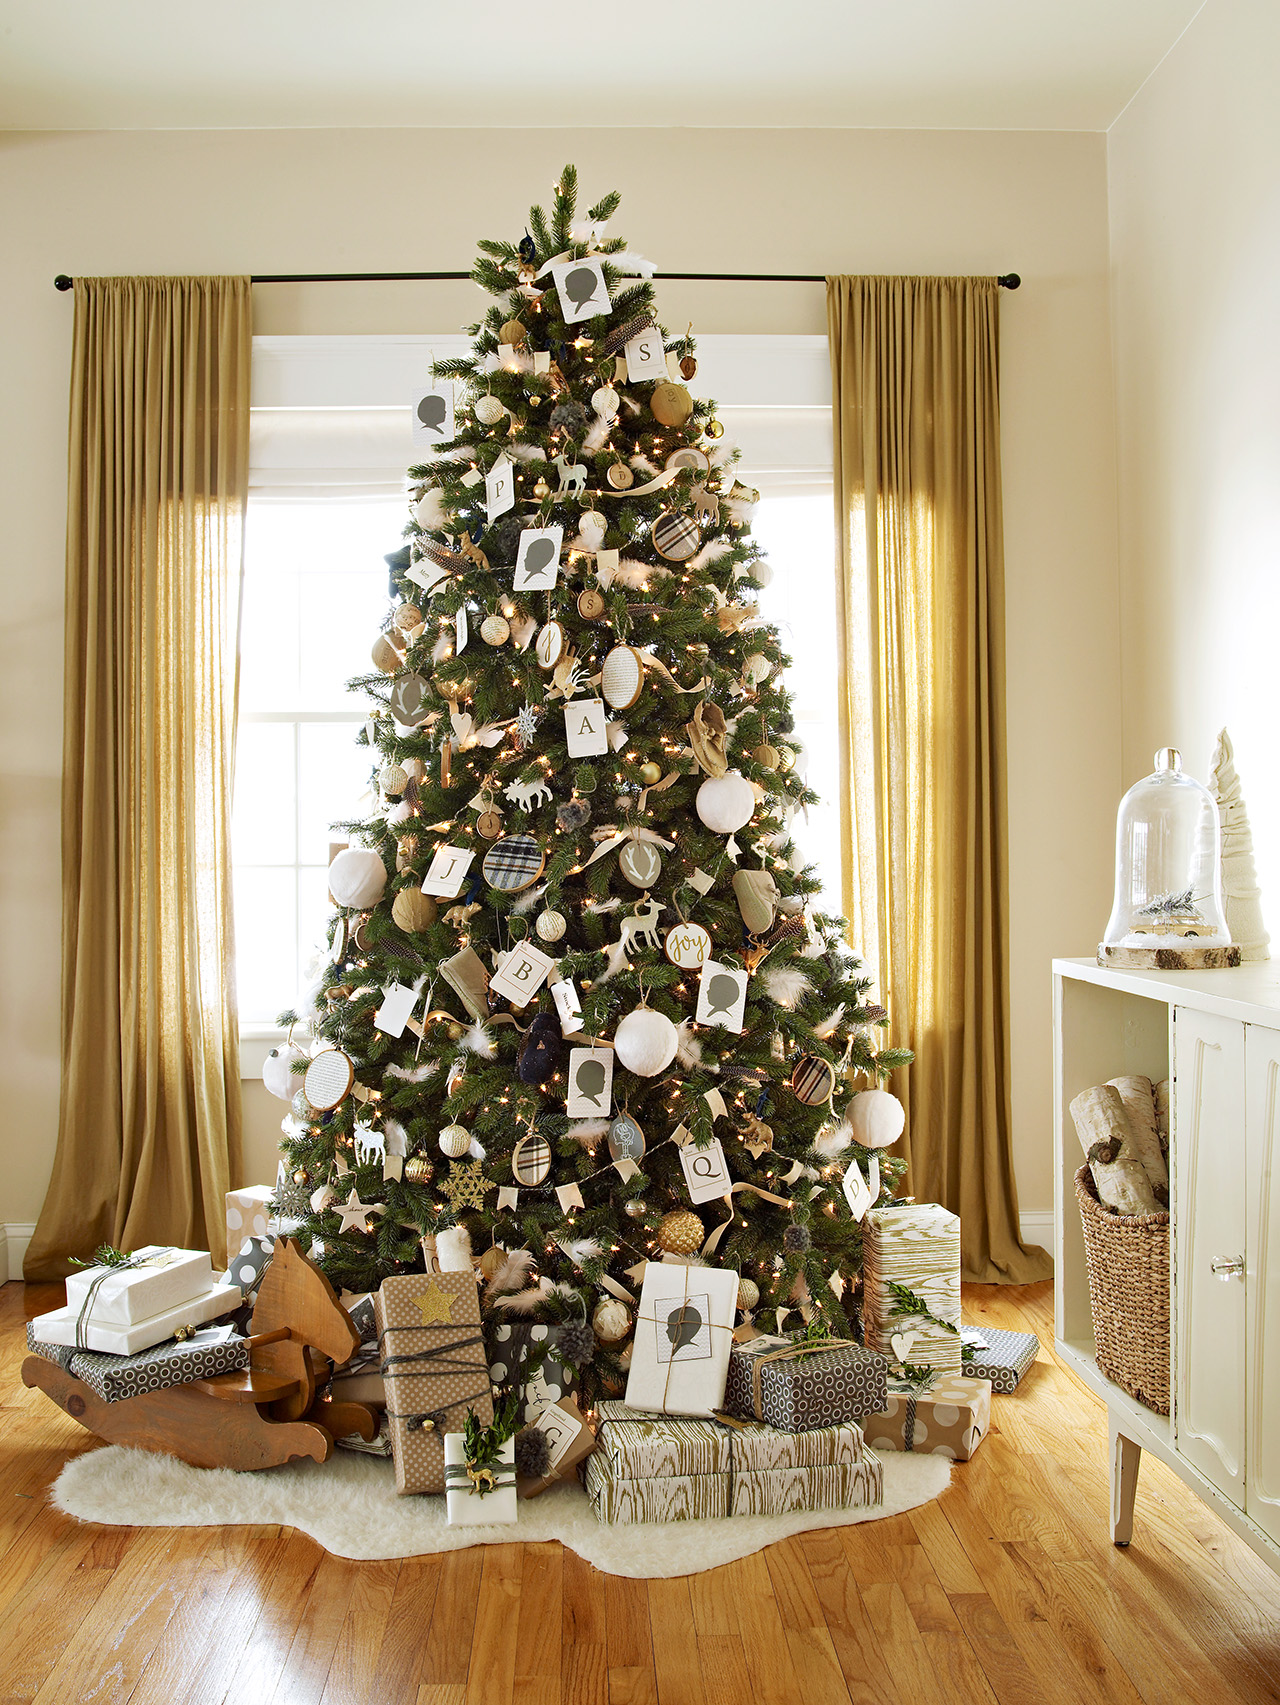 Images Of Christmas Trees.Types Of Christmas Trees Better Homes Gardens